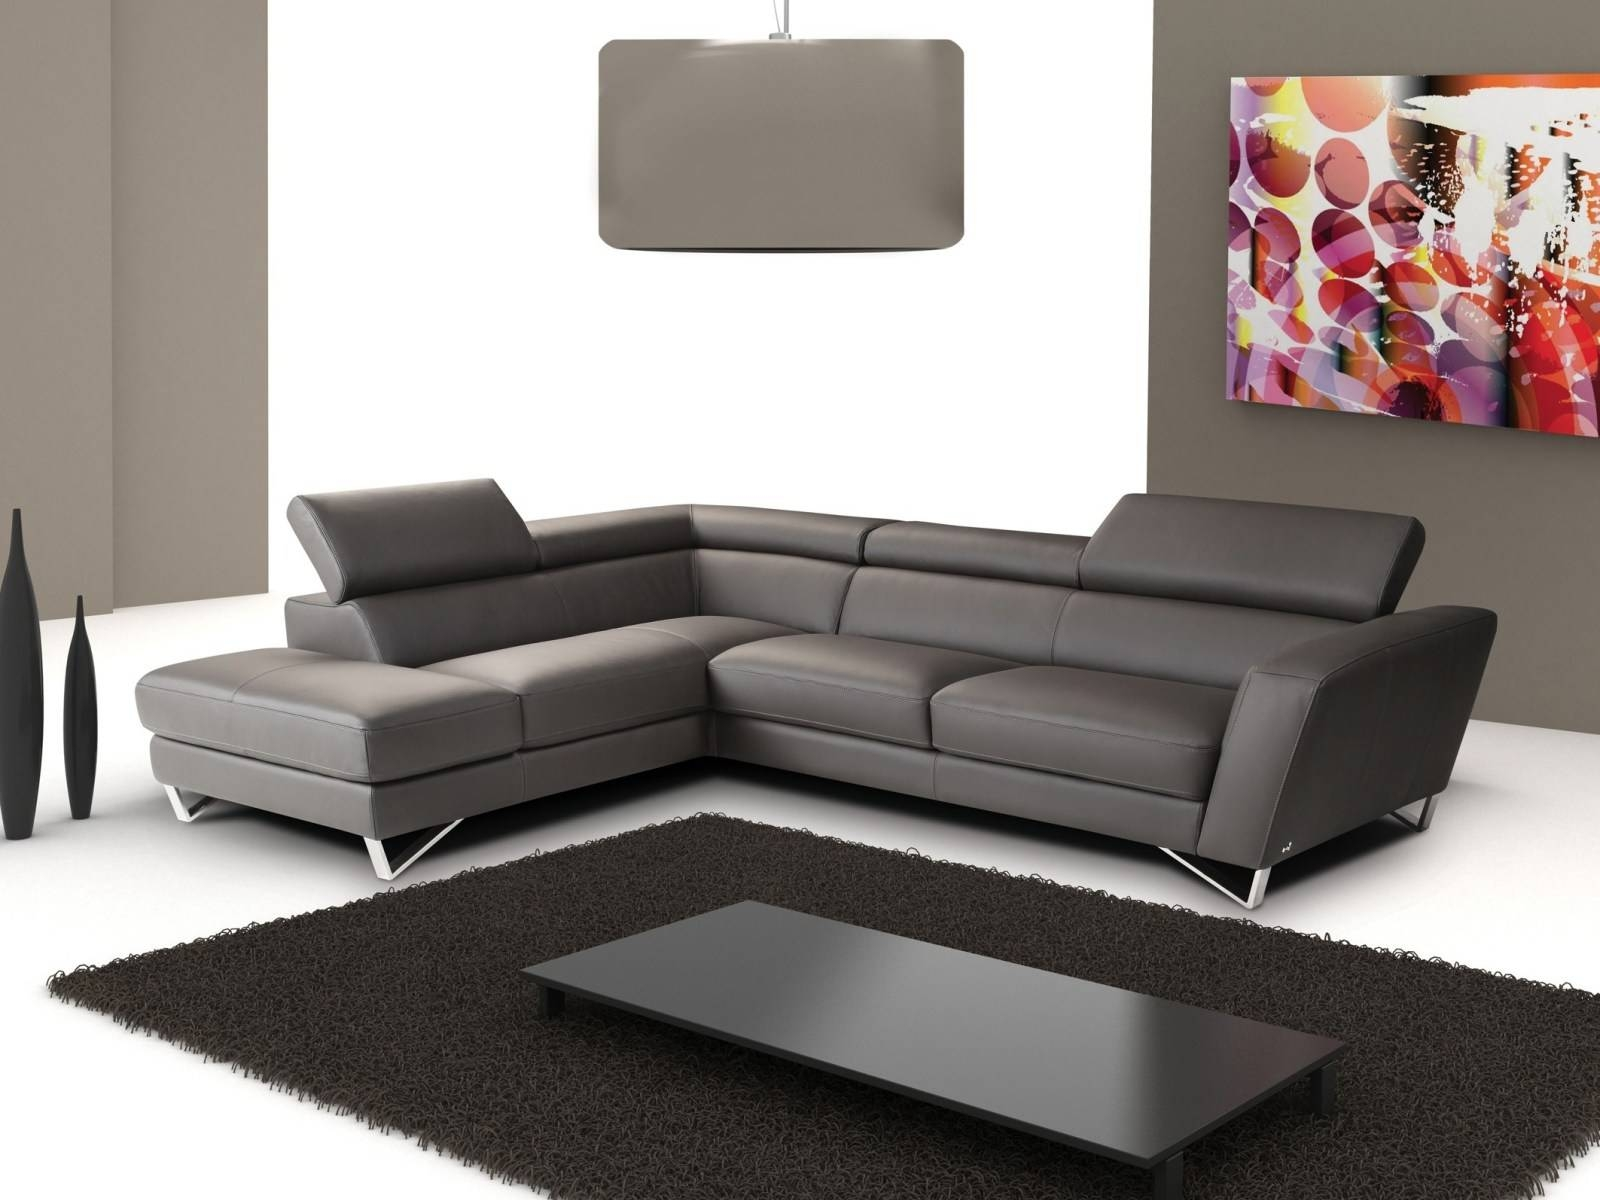 Sofa: Cool Couches For Provides A Warm To Comfortable Feel And Low throughout Convertible Sectional Sofas (Image 22 of 30)